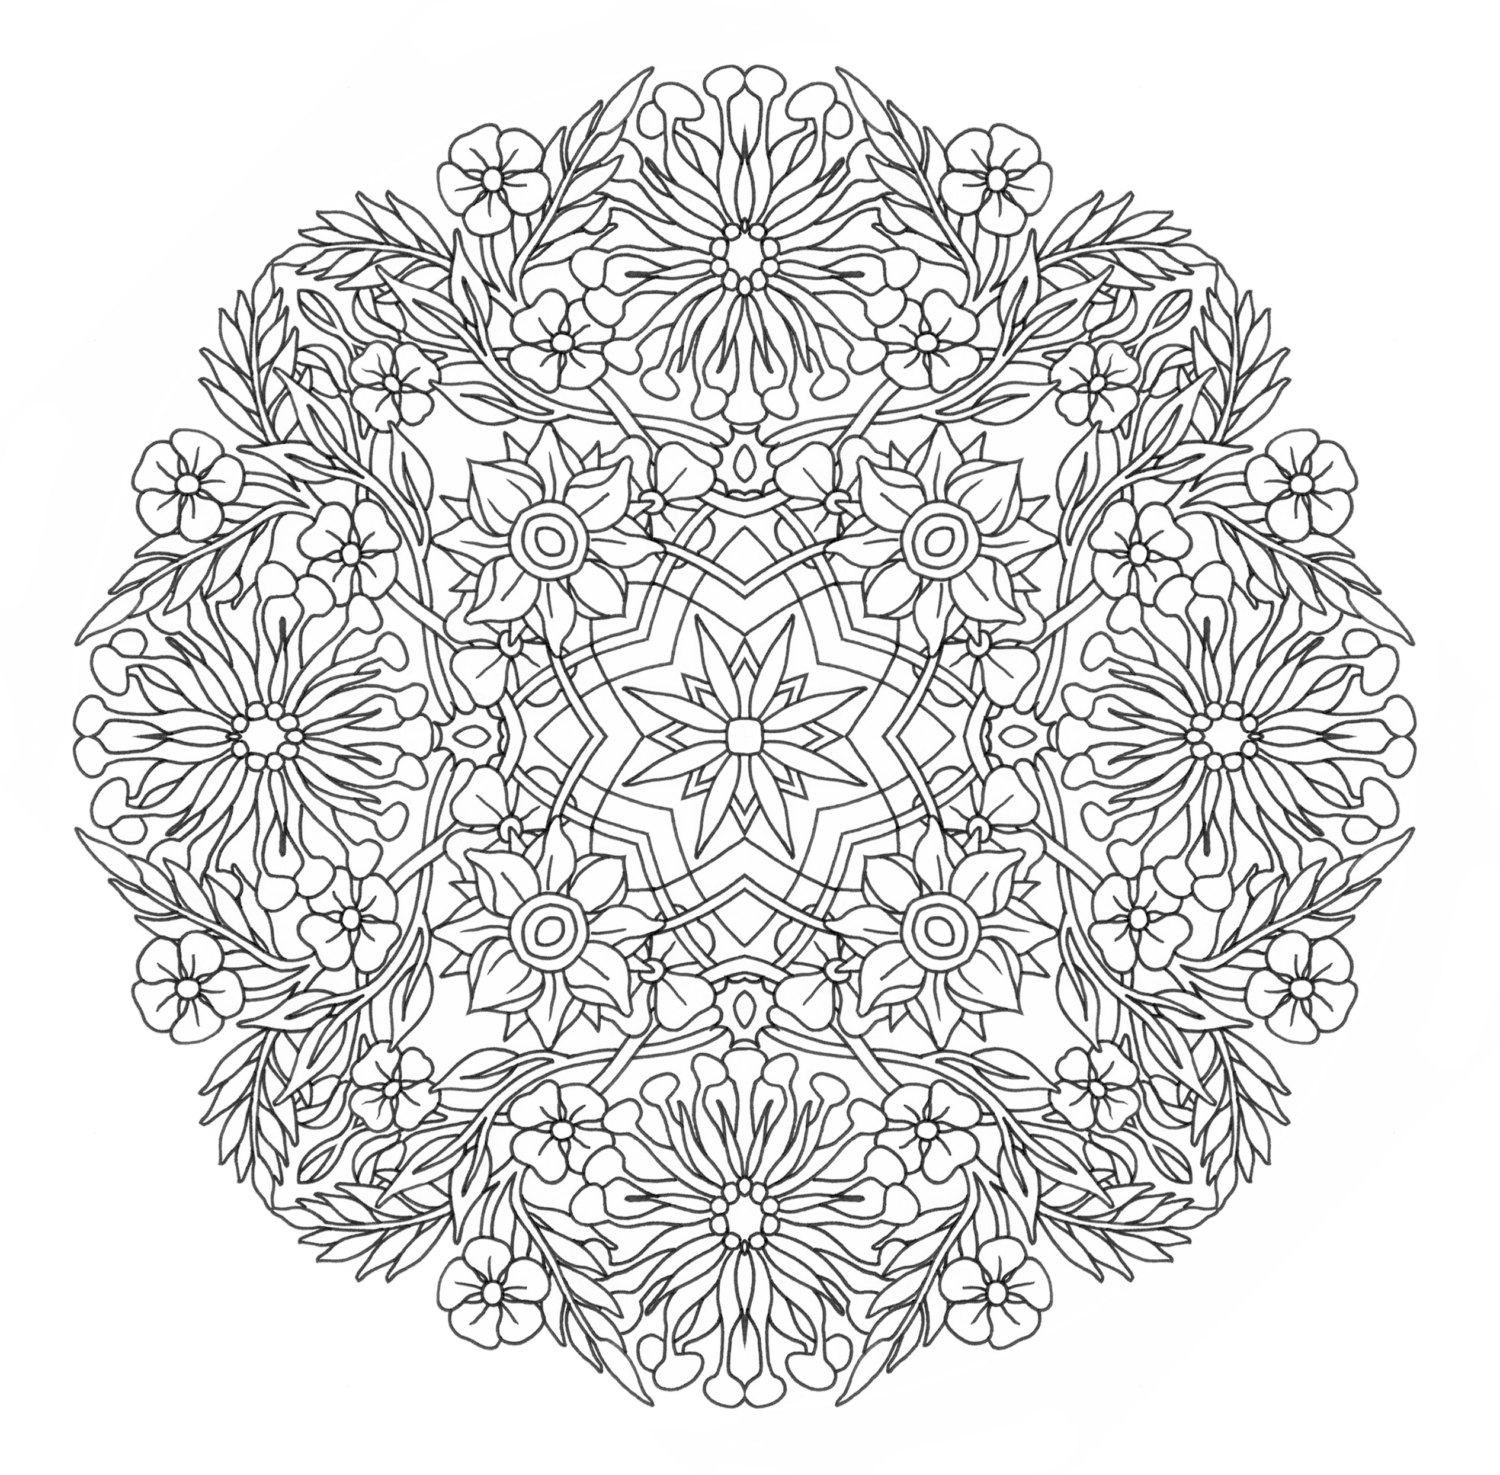 free coloring mandalas these printable abstract coloring pages relieve stress and free coloring mandalas